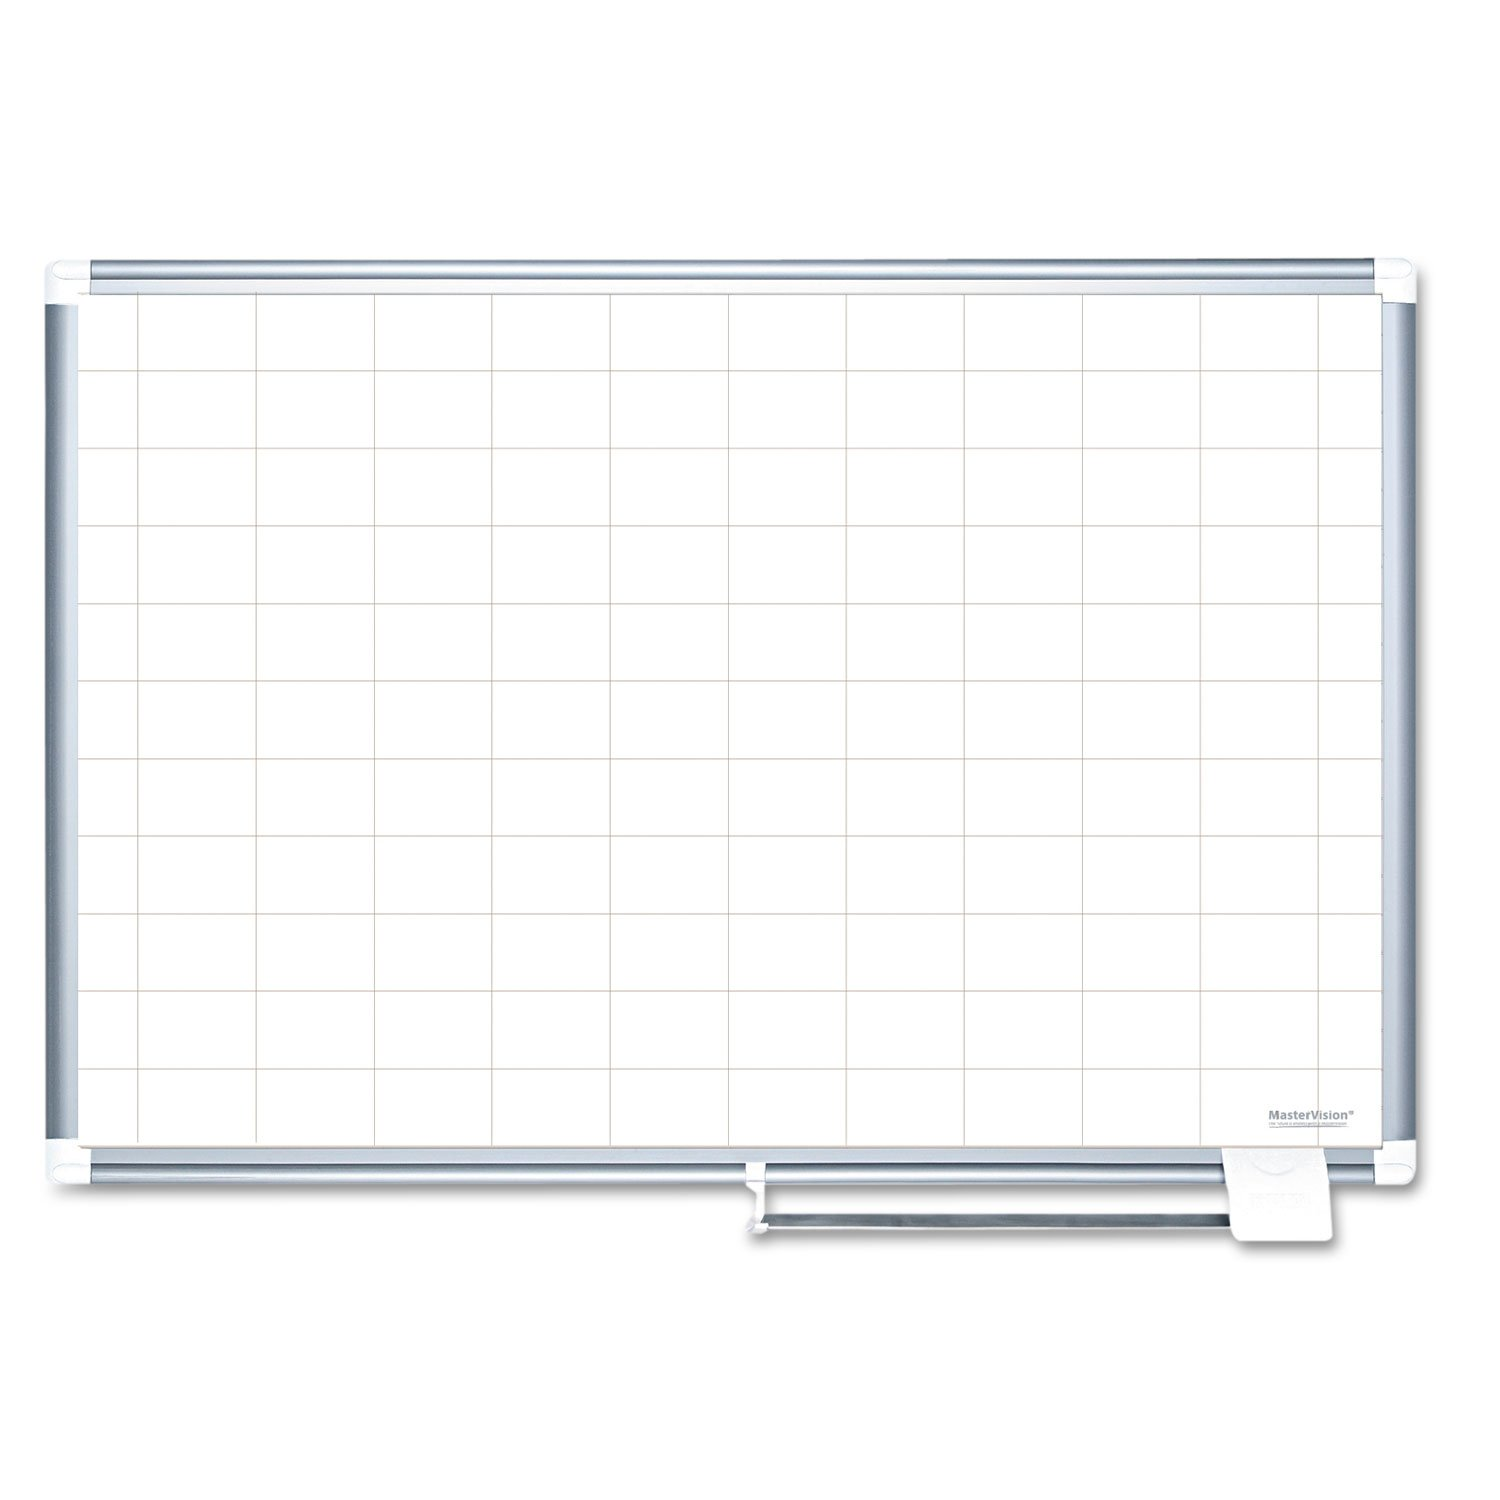 MasterVision MA2793830 Grid Planning Board, 2x3 Grid, 72x48, White/Silver